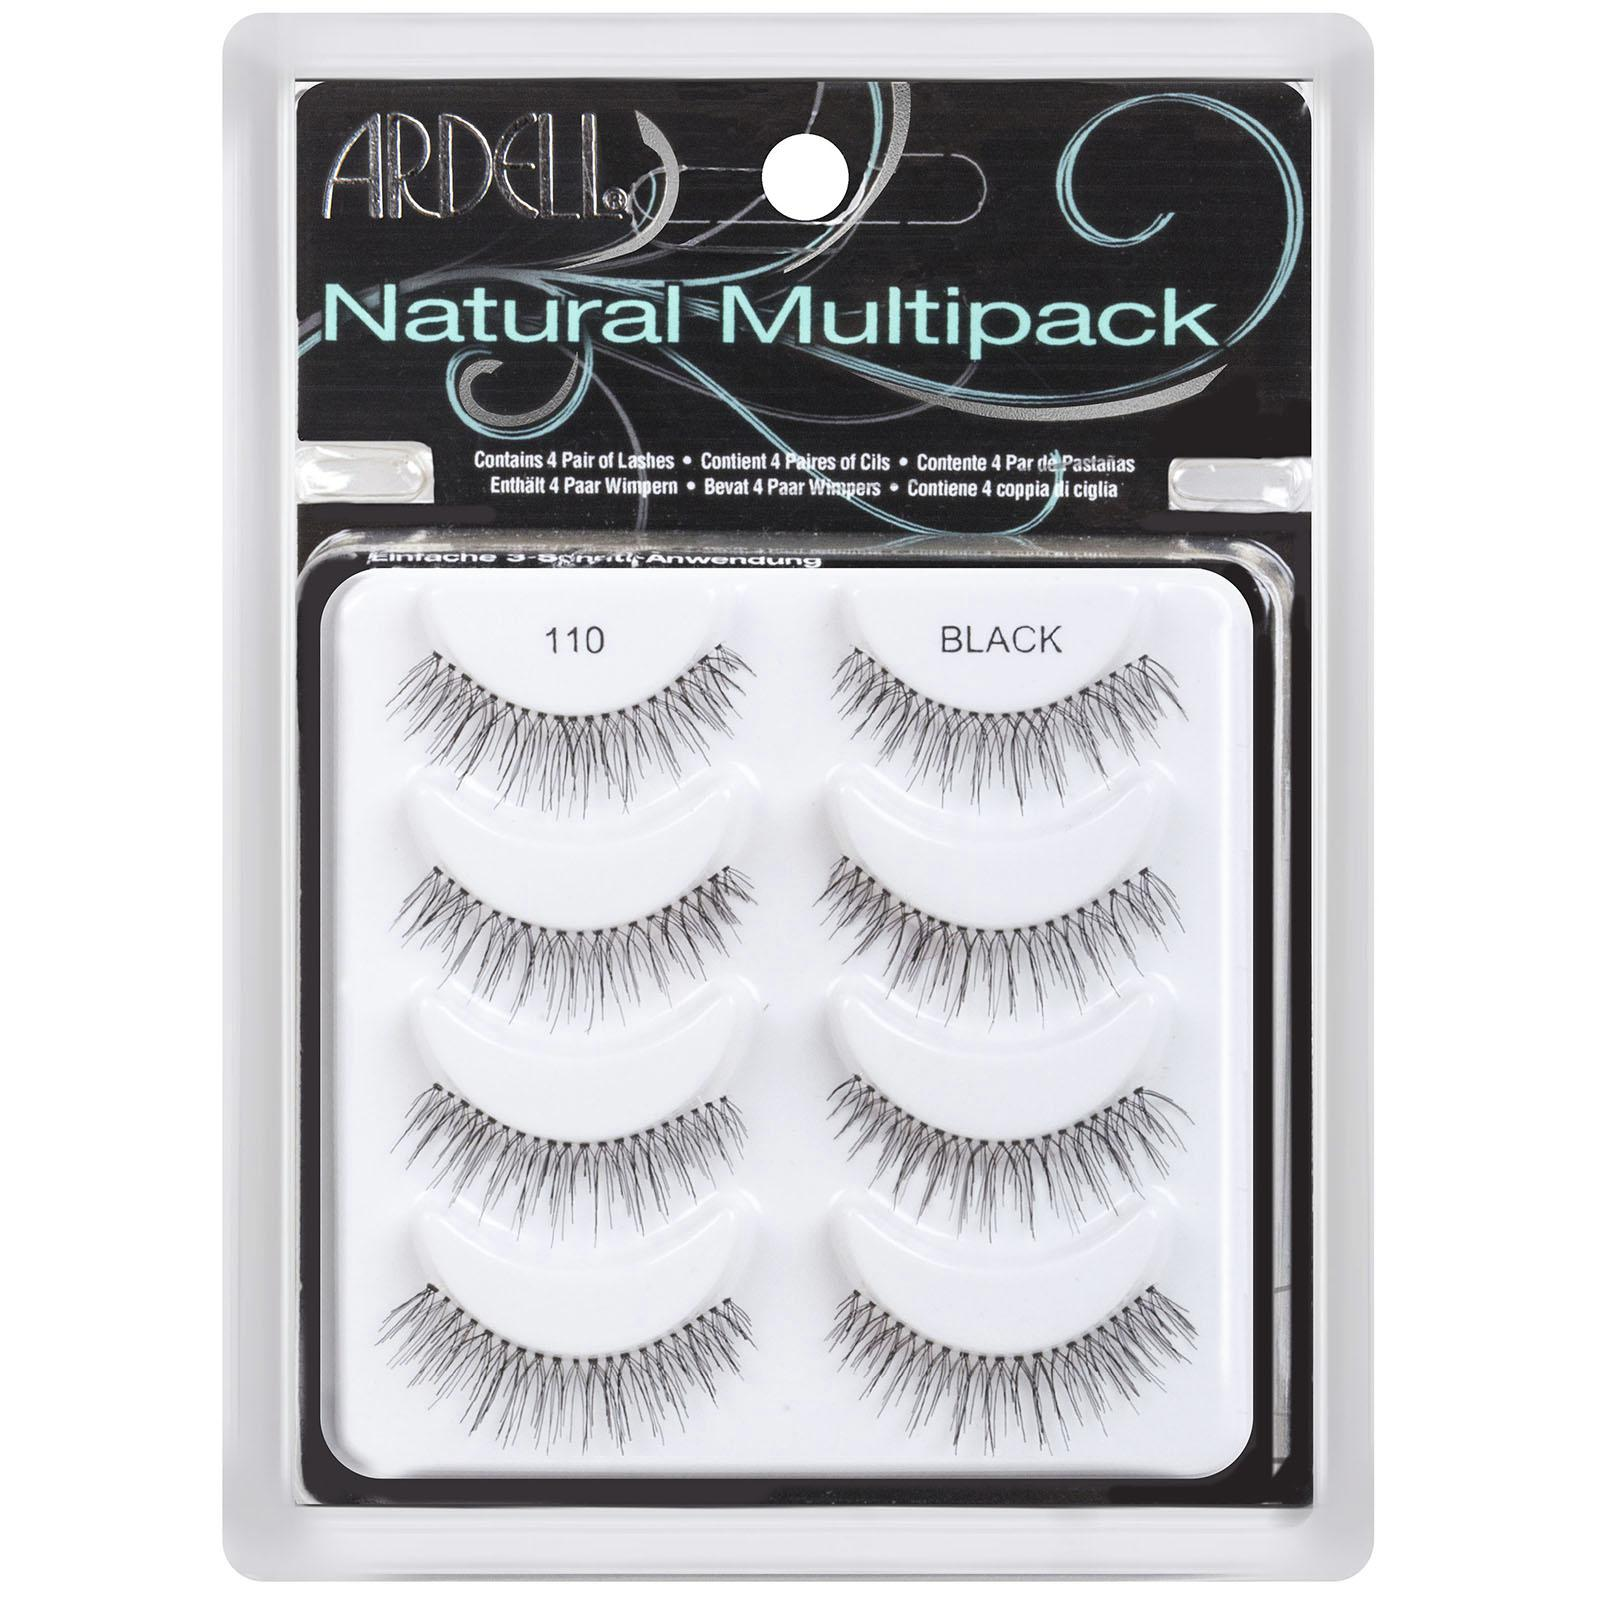 Ardell Professional Glamour Multipack 110 Black 4 Pairs